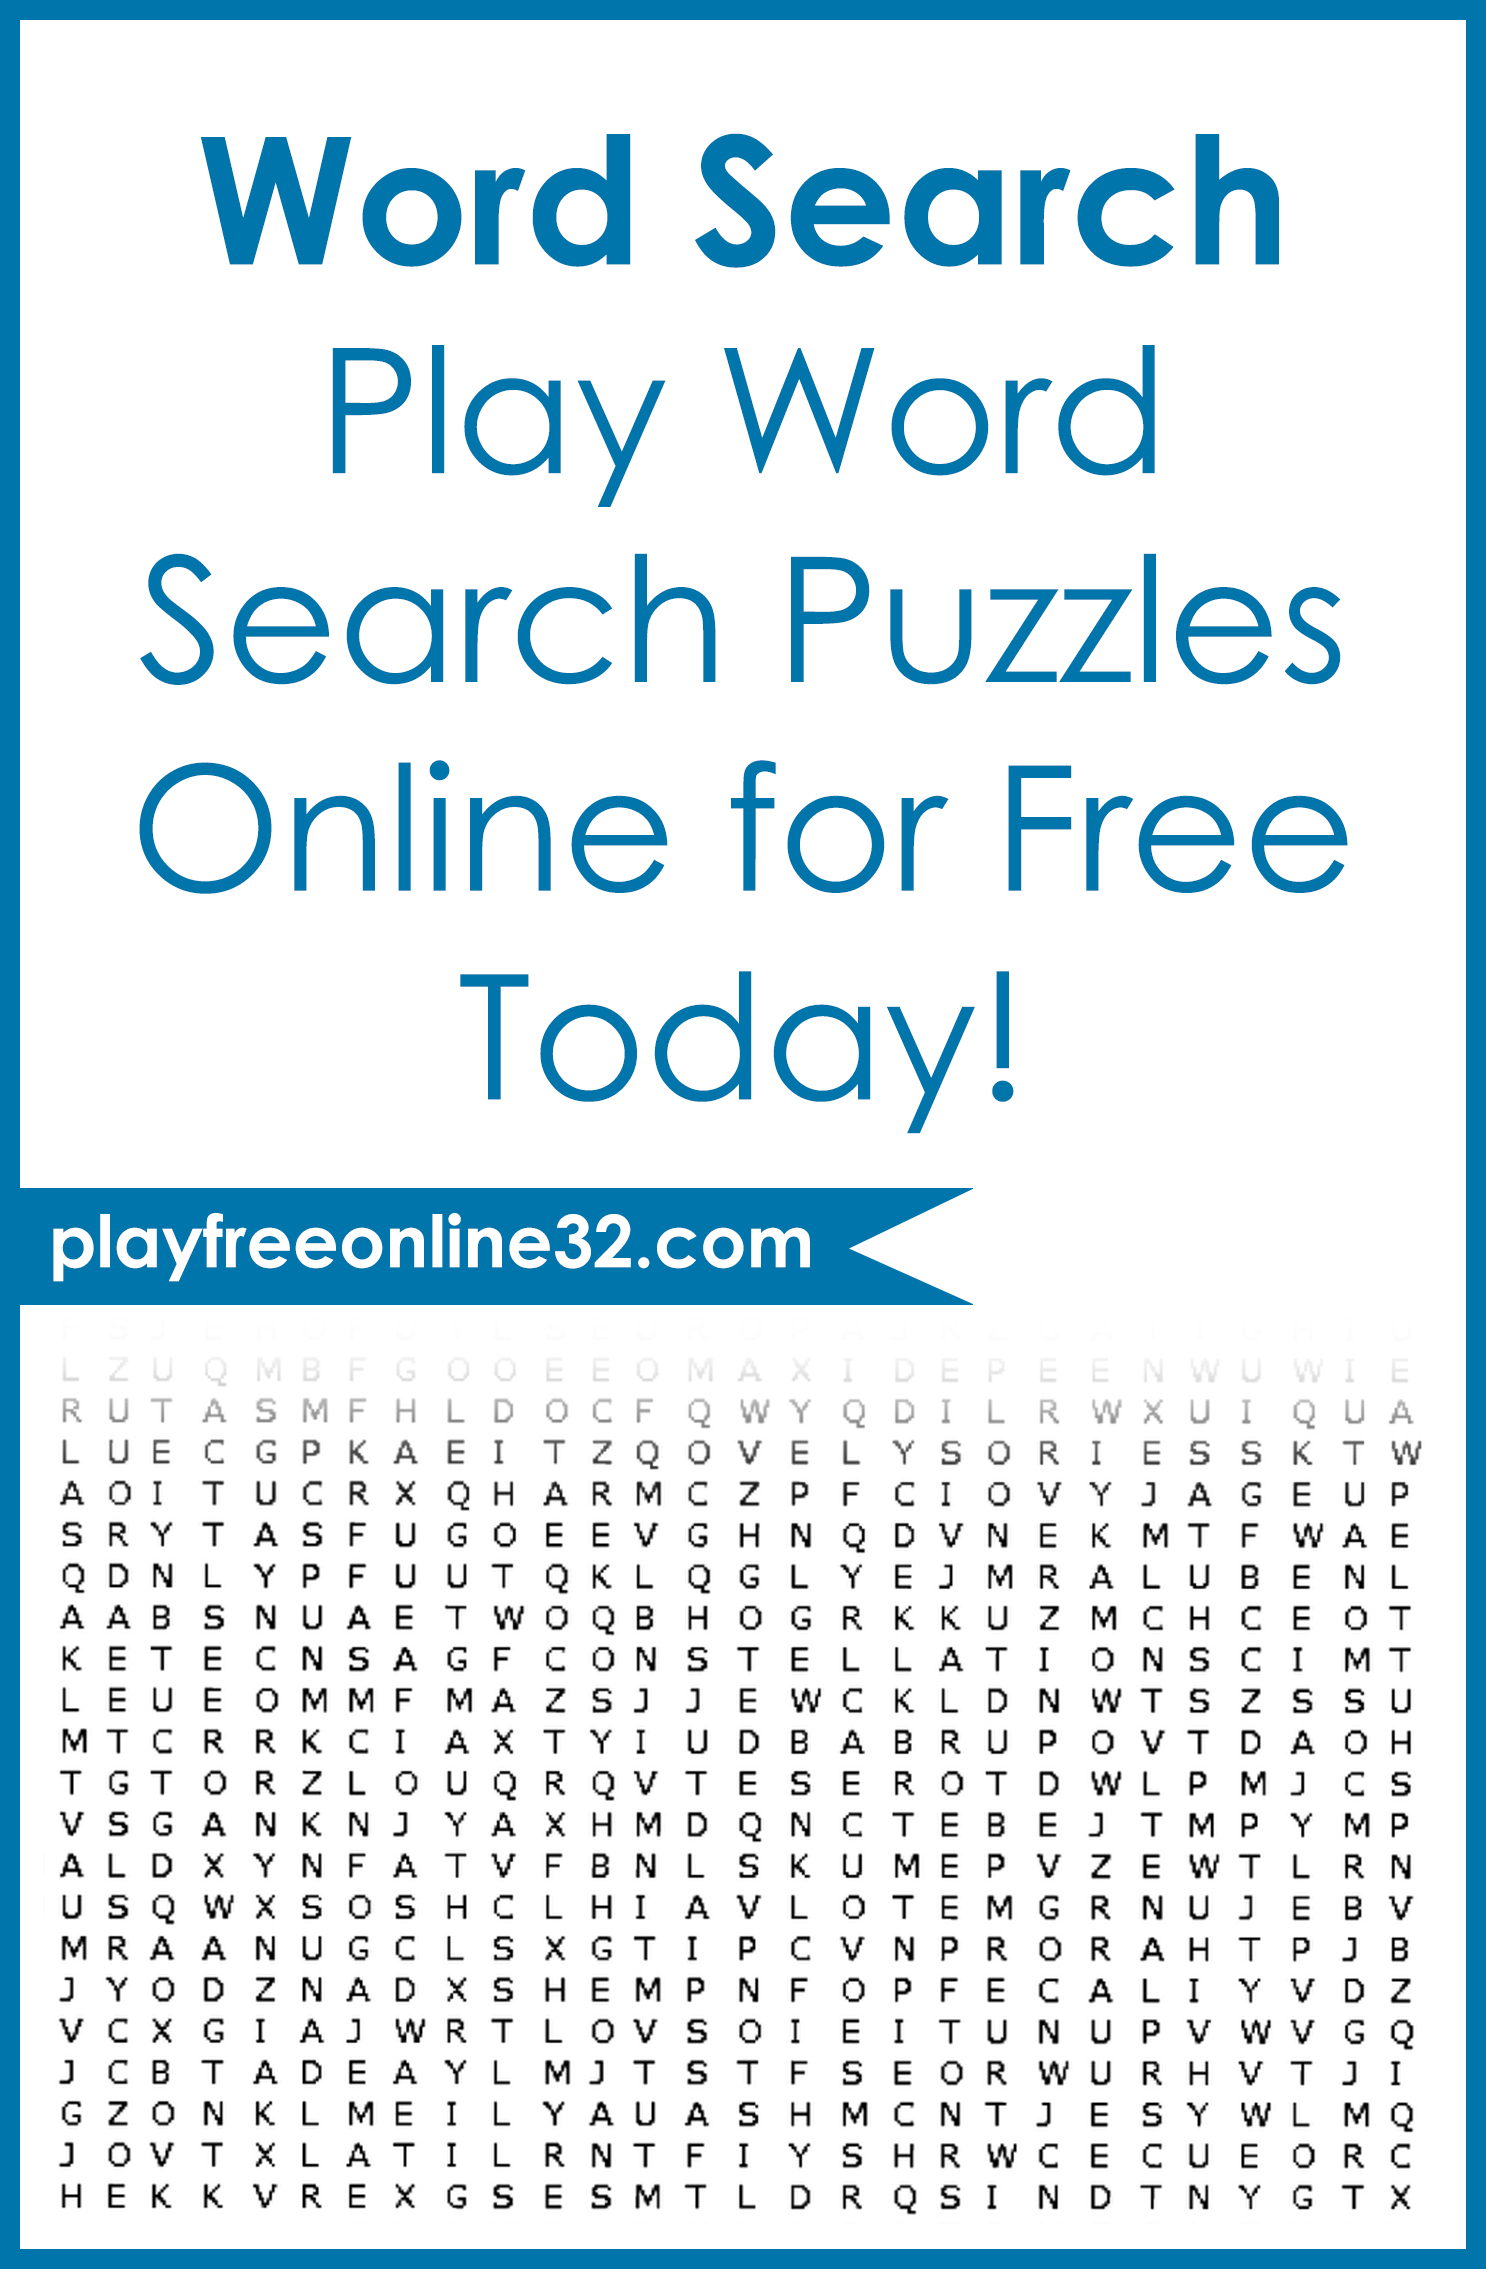 Word Search • Play Word Search Puzzles Online for Free Today!